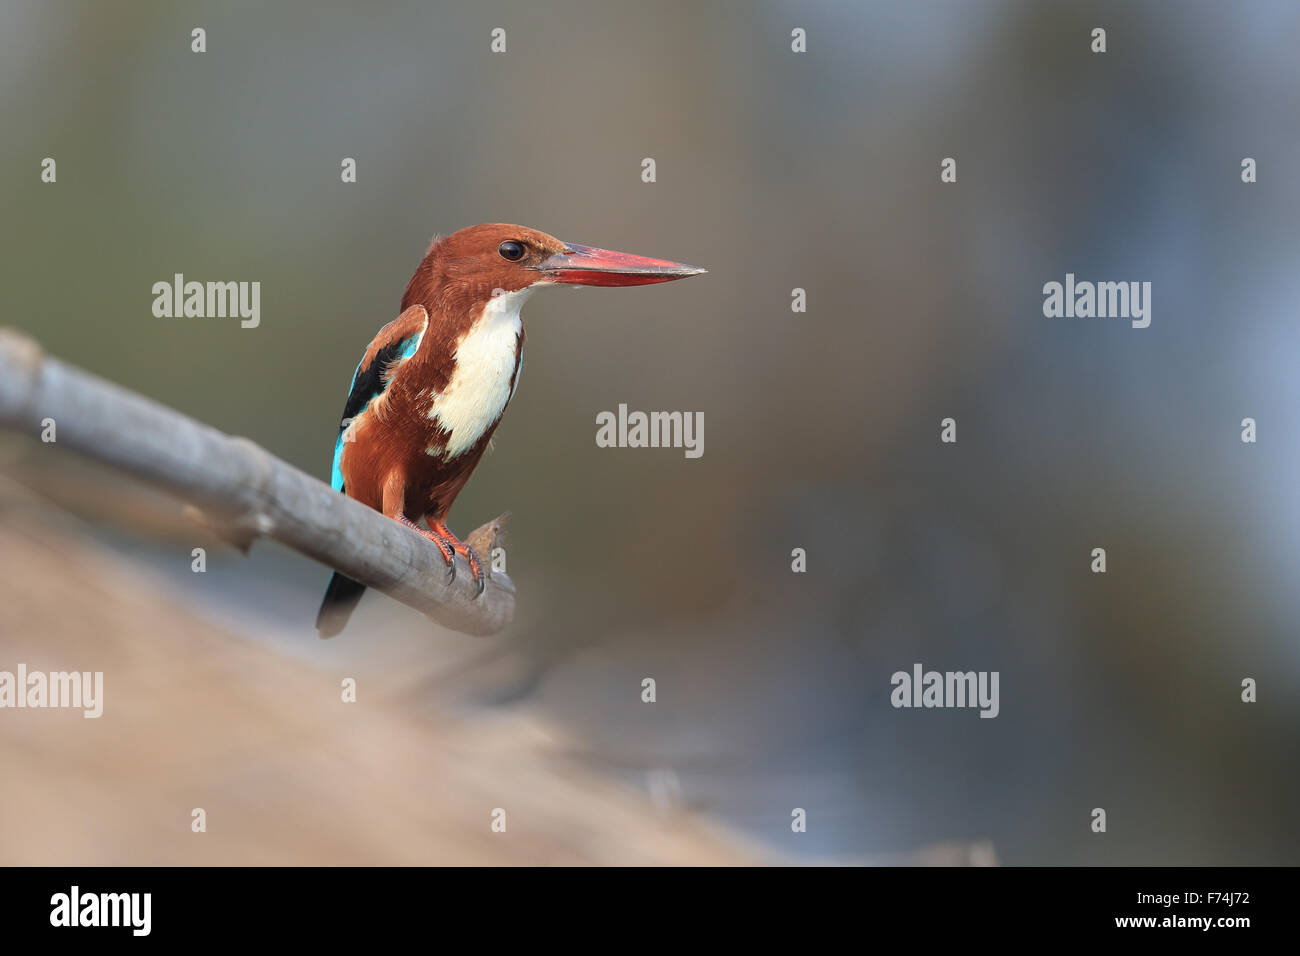 White-throated Kingfisher (Halcyon smyrnensis) - Stock Image